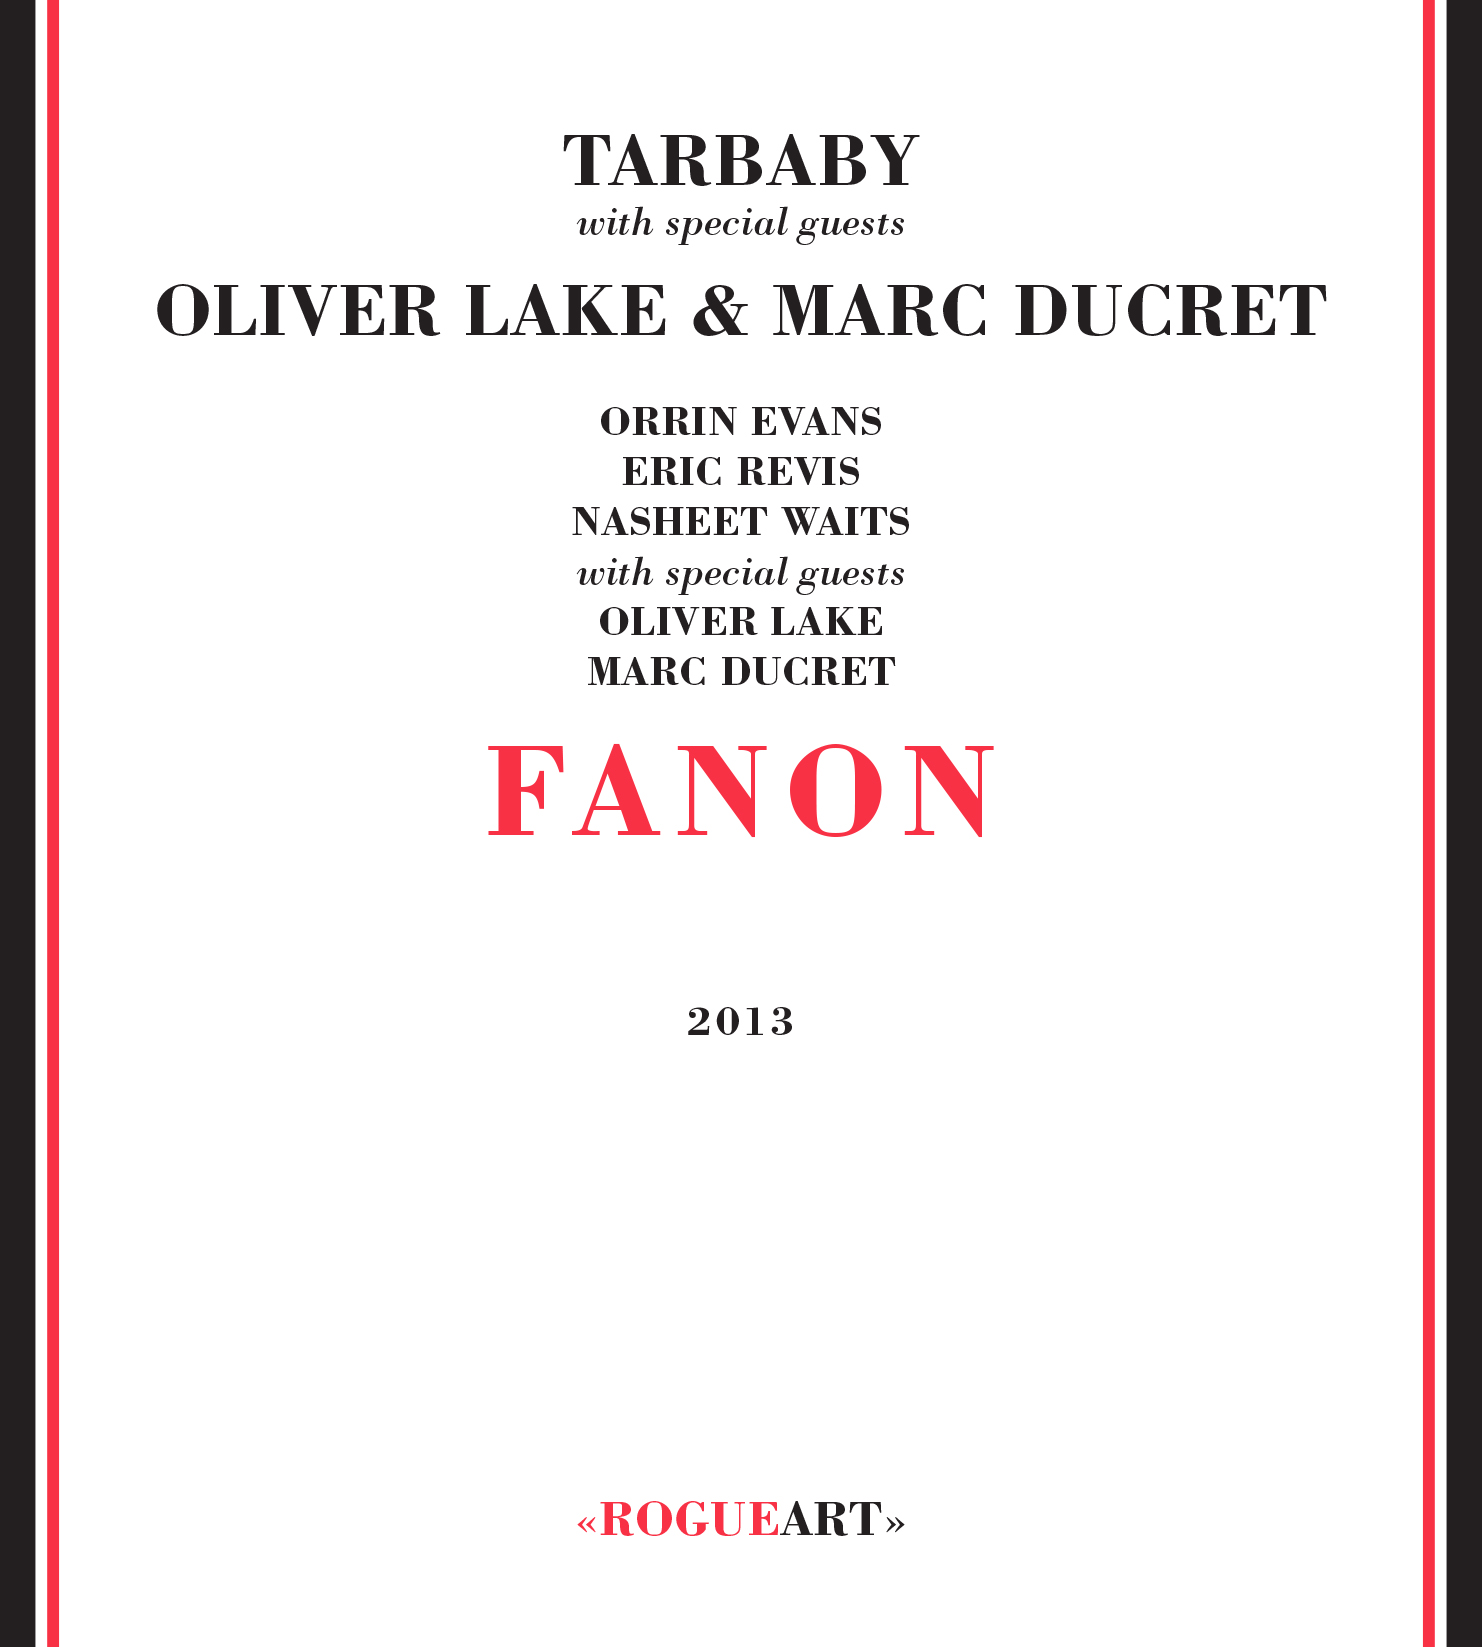 Front cover of the album FANON